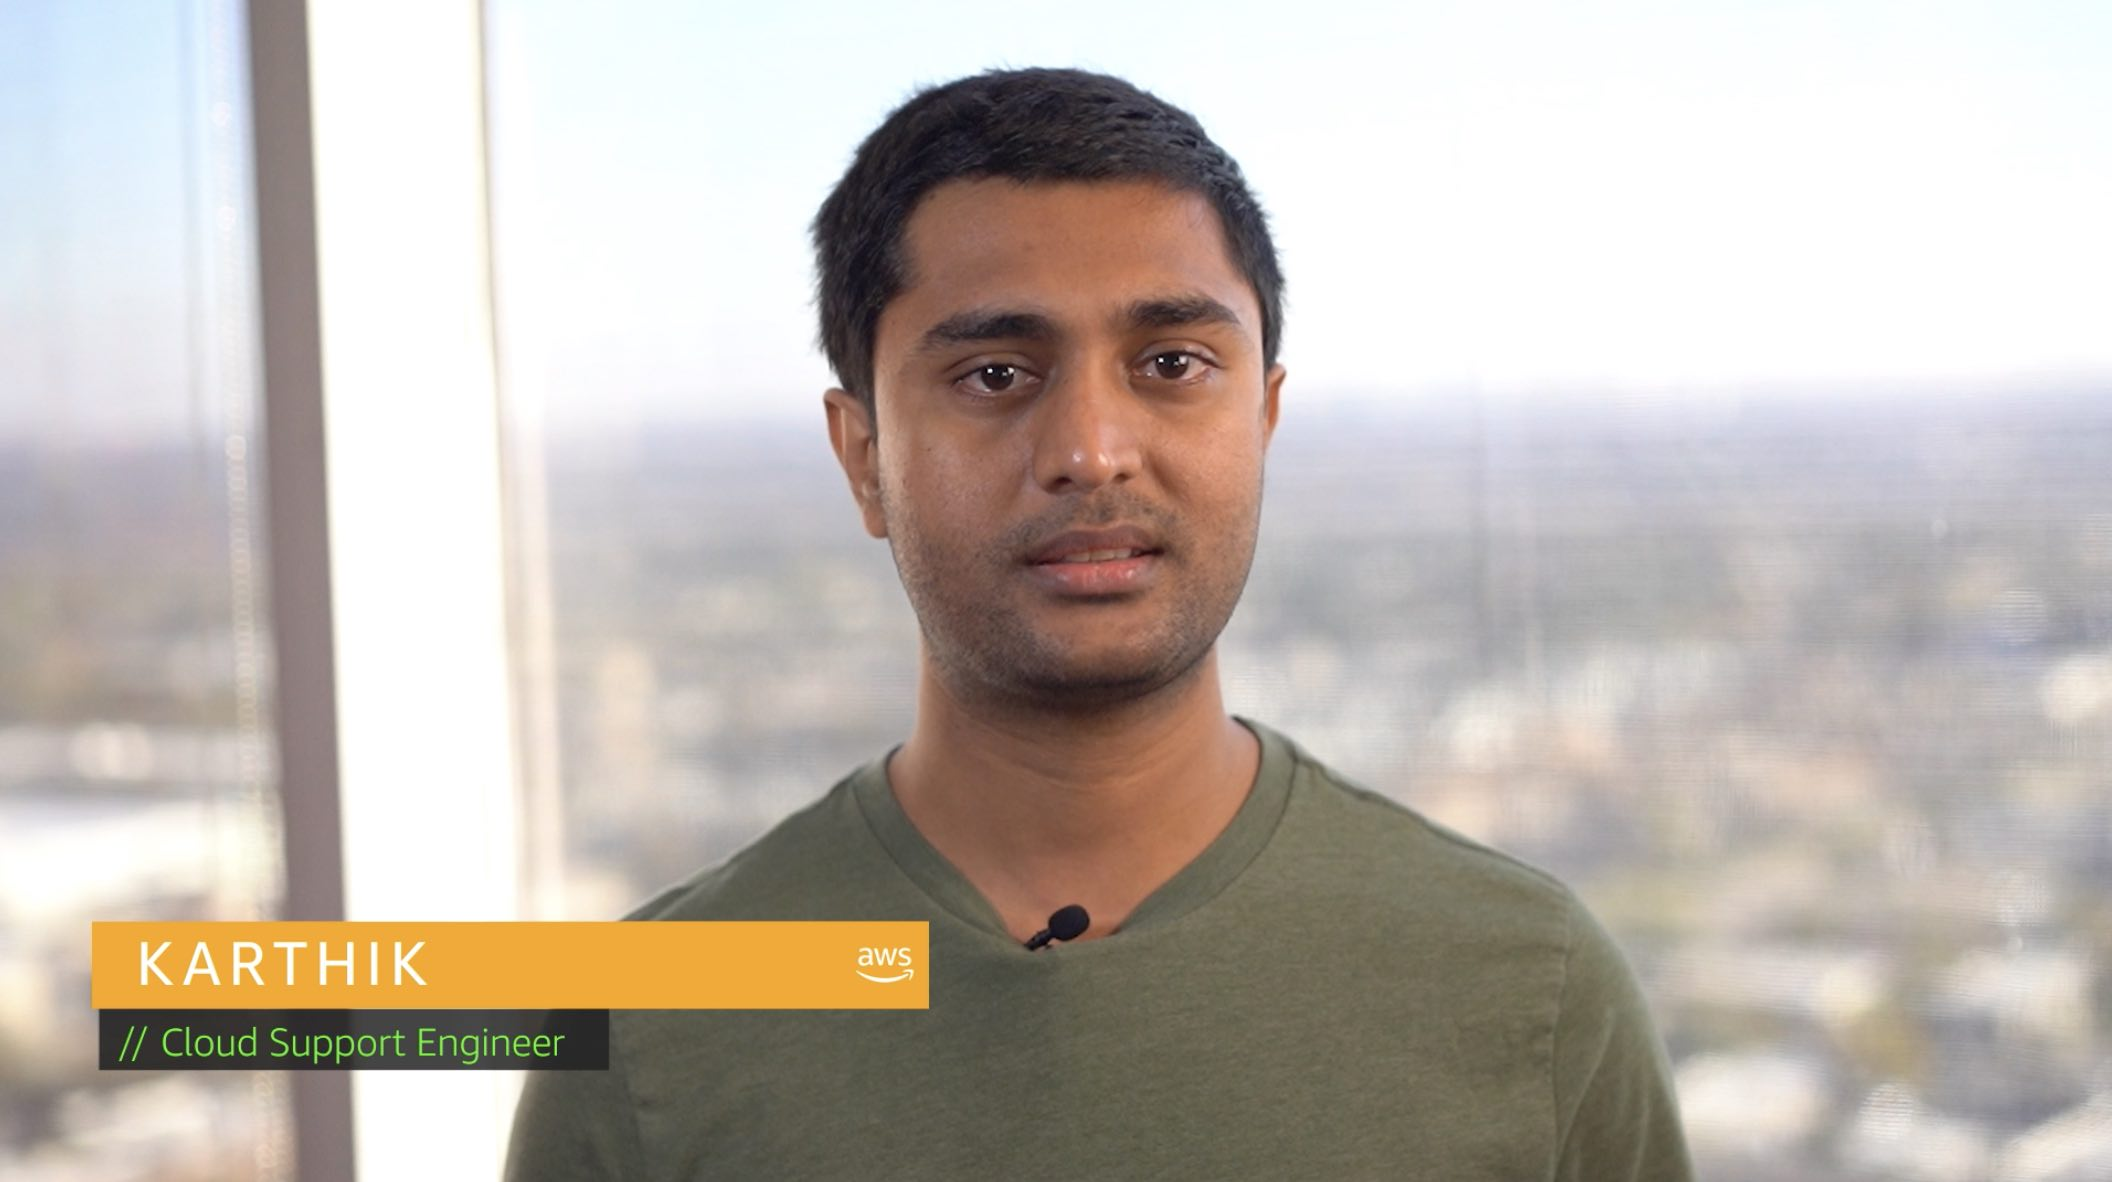 Watch Karthik's video to learn more